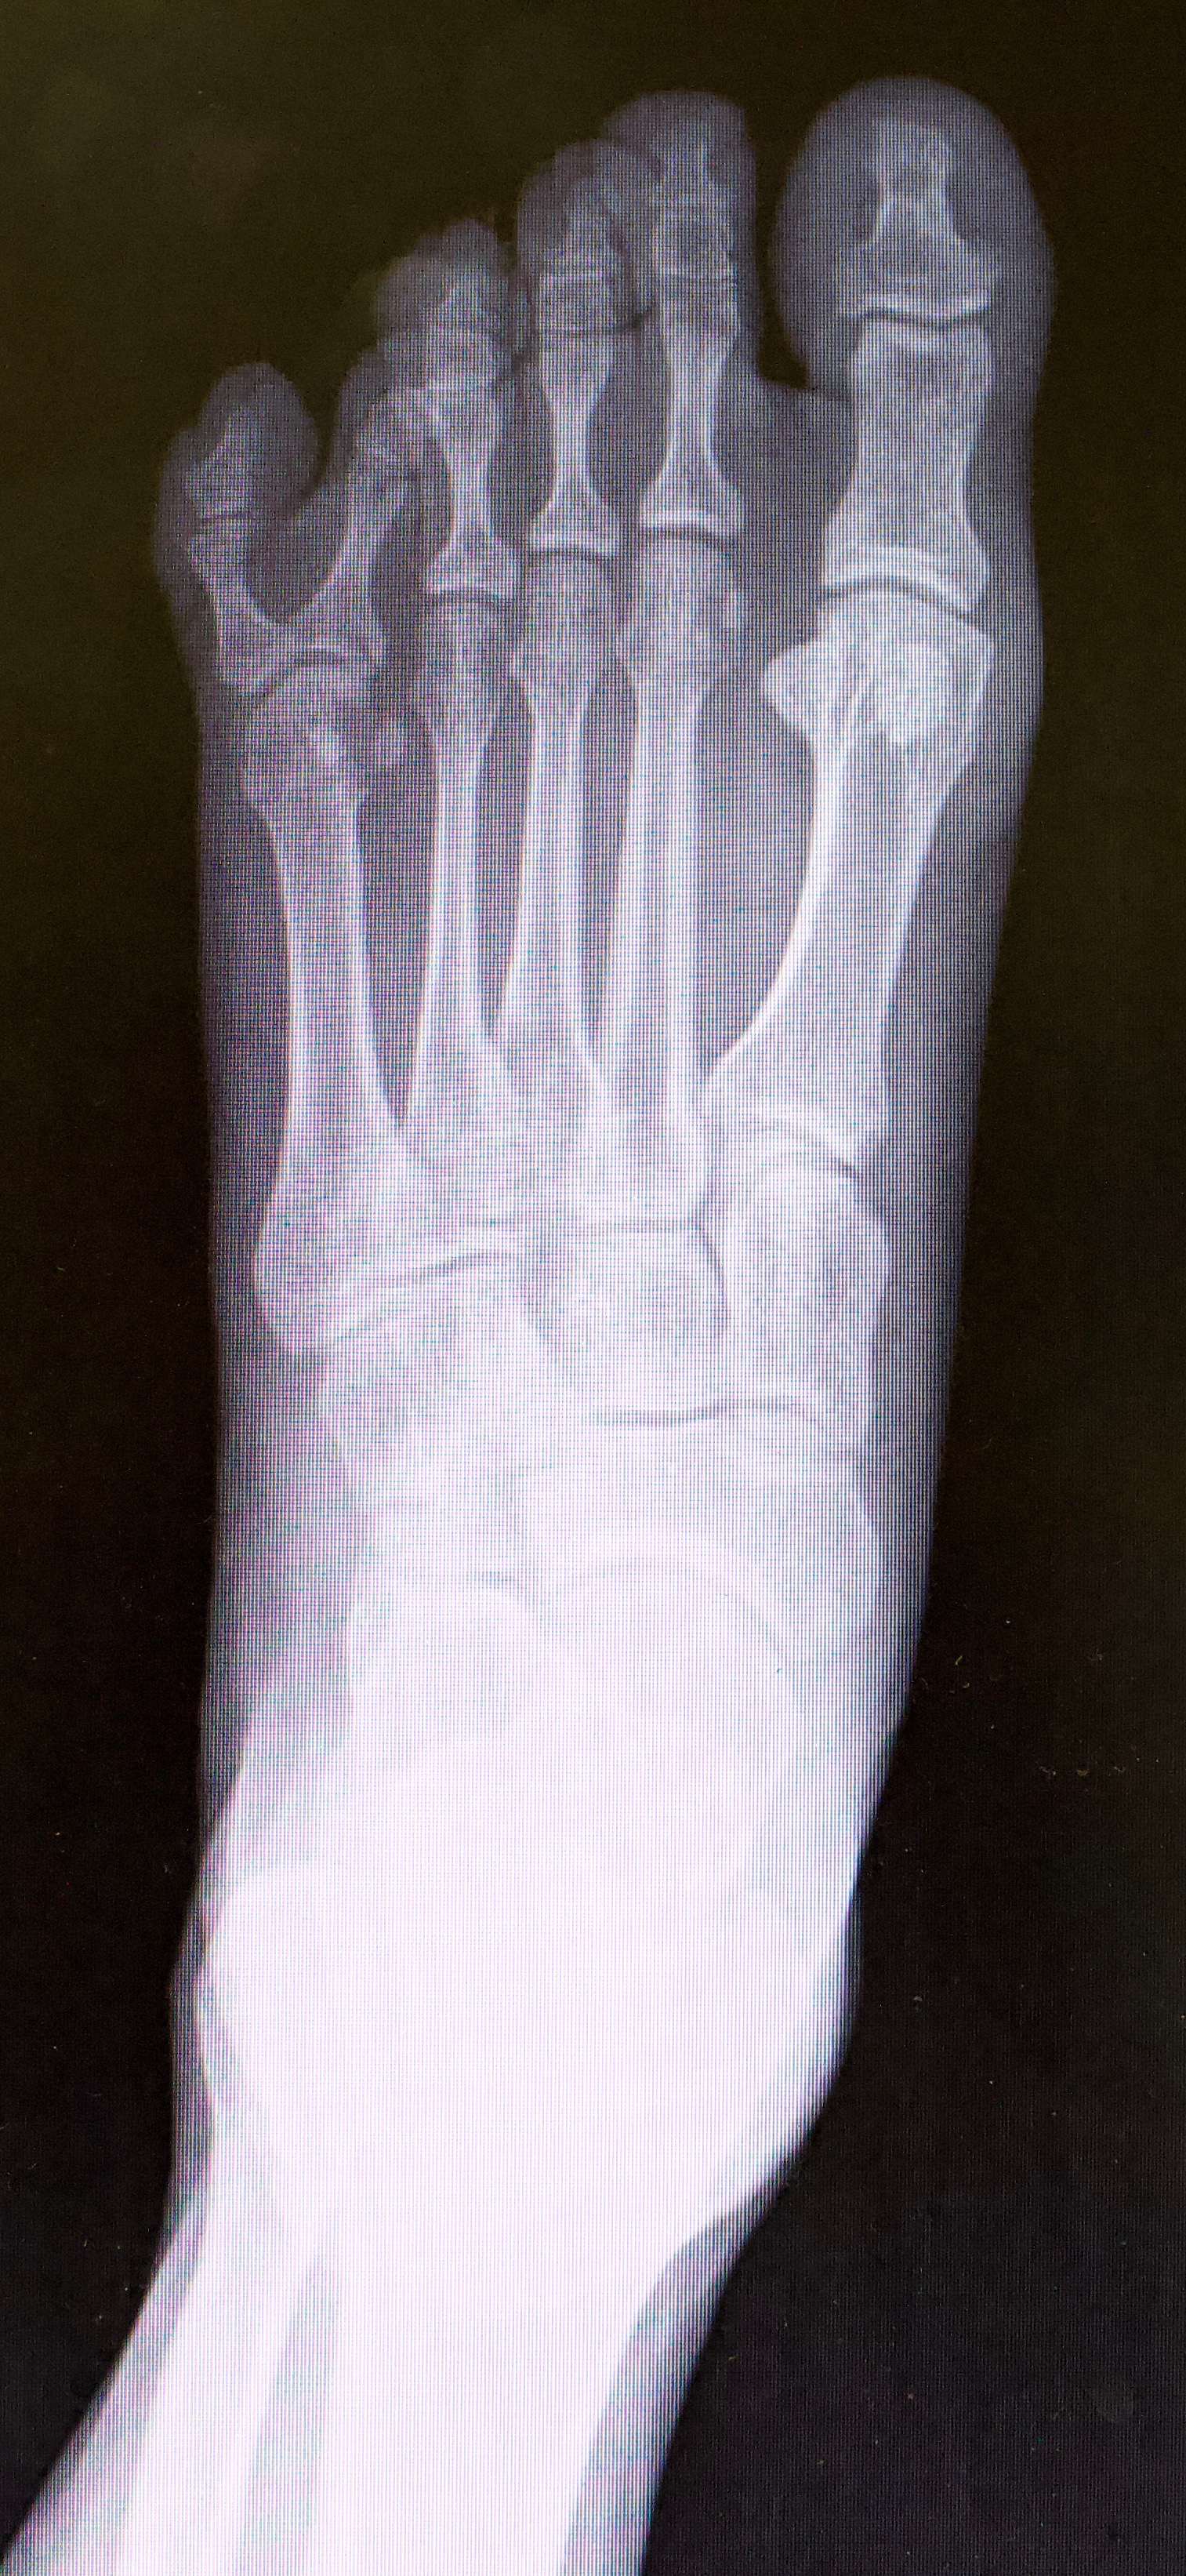 Here one can see a dorsoplantar radiograph showing fifth digit polydactyly.